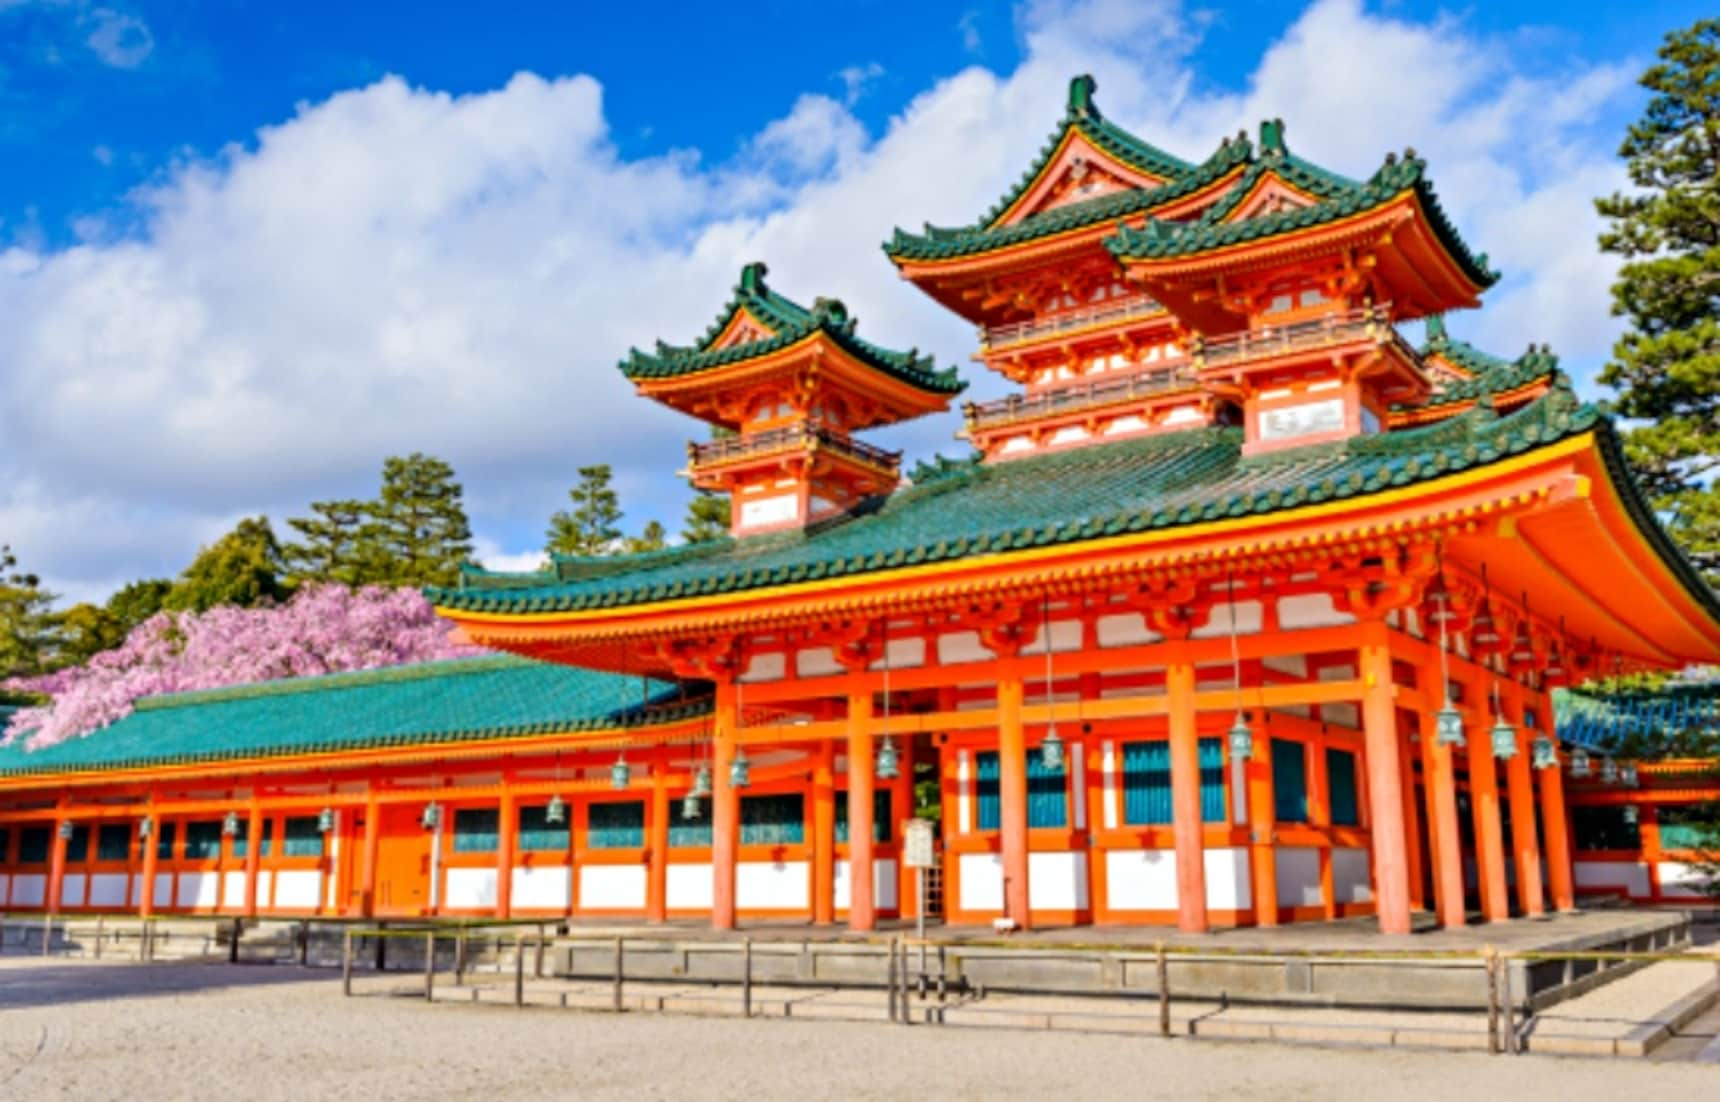 The Ancient City of Kyoto Bus Tour